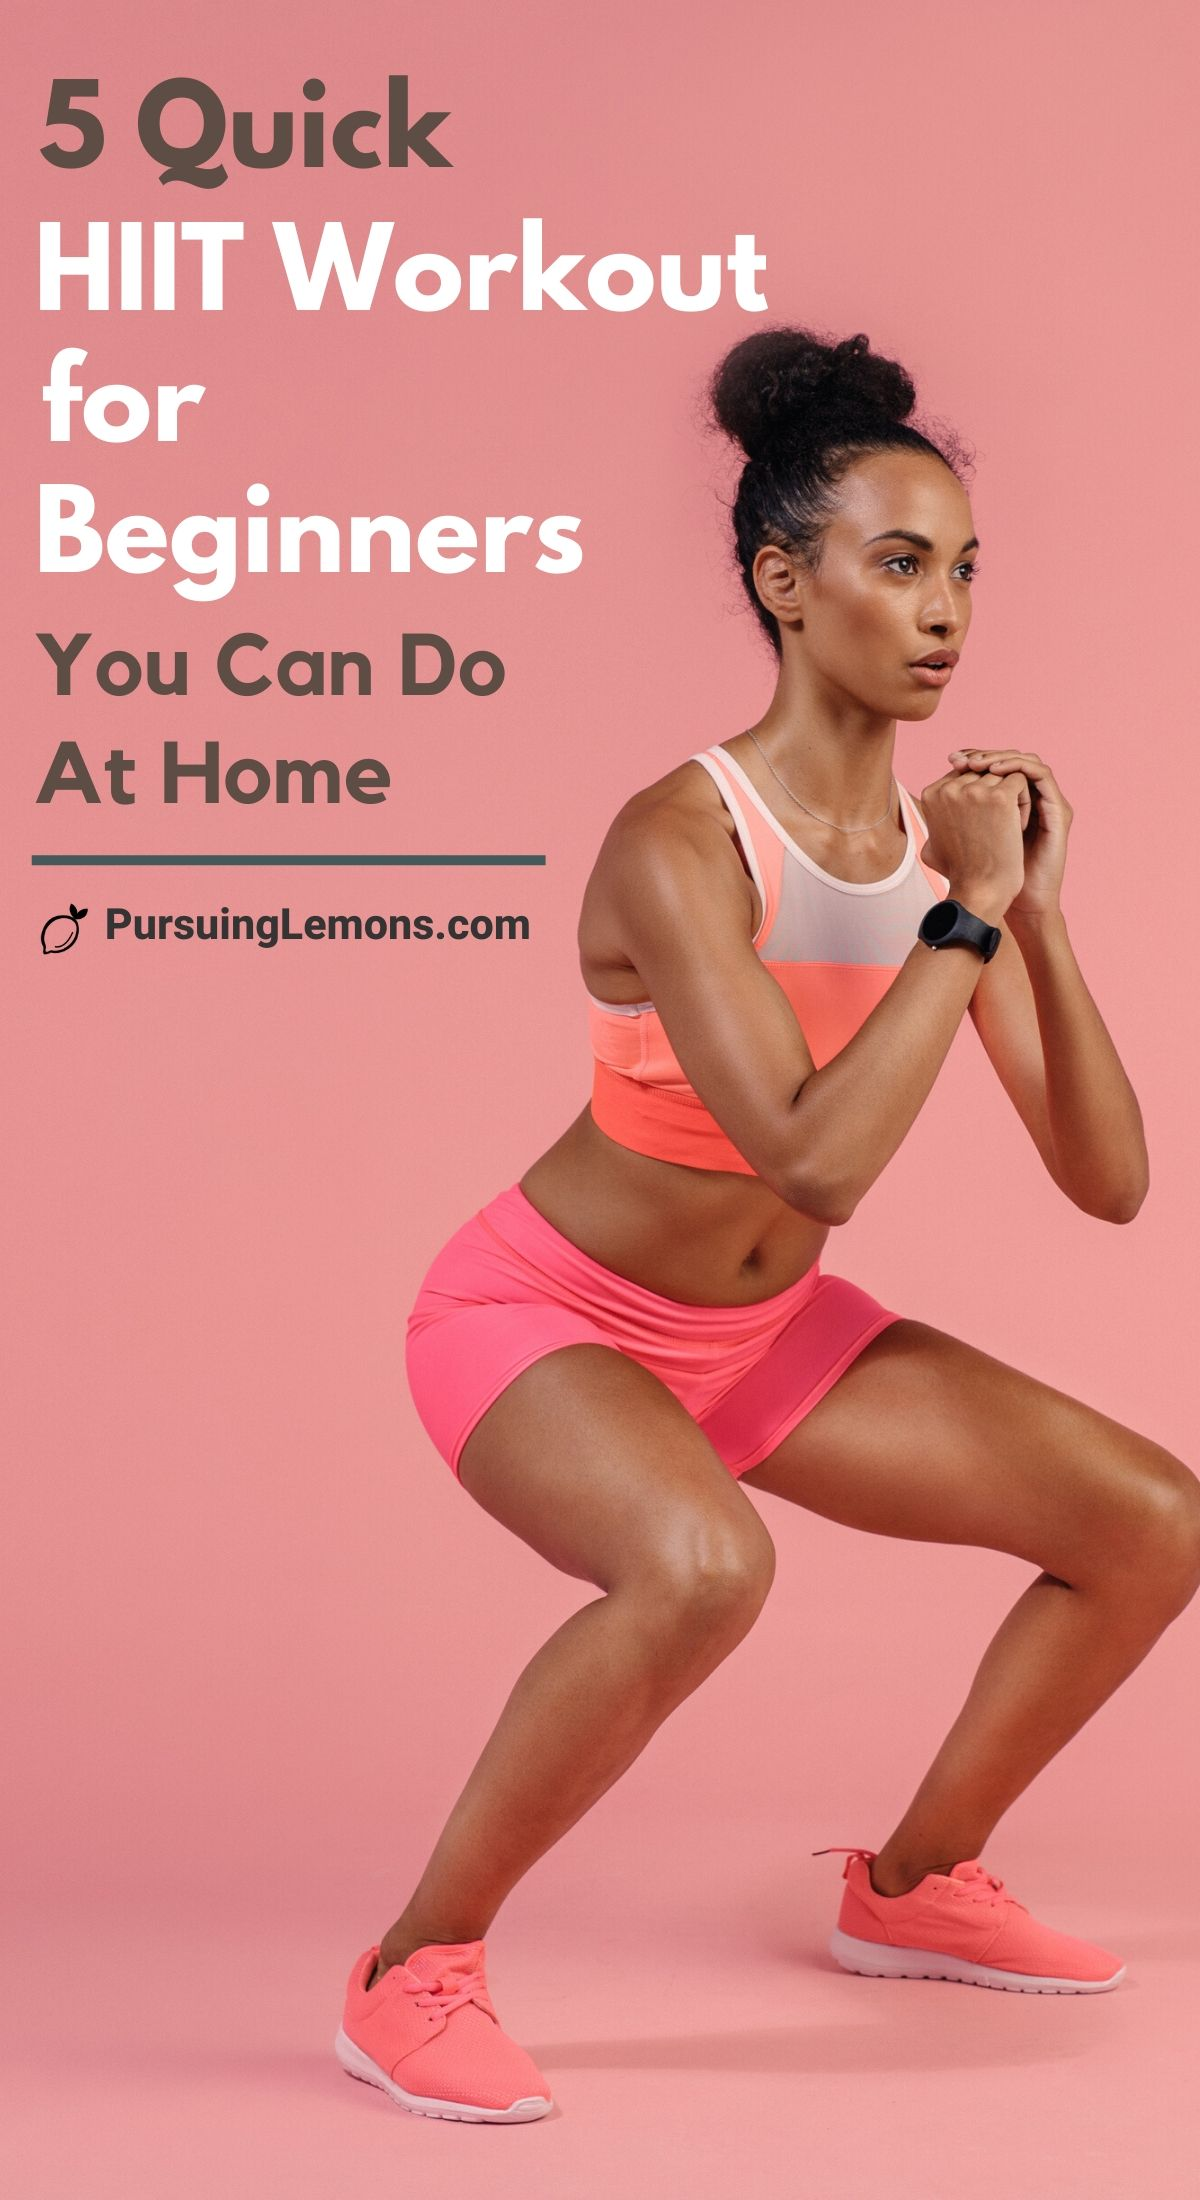 5 Quick HIIT Workouts For Beginners to start losing weight! You can do these workouts at home or at the gym, these workout routines will help you burn belly fat and shed those pounds in no time. The high intensity a combination of cardio and strengthening exercises which makes these workouts very practical. These high intensity interval training is beginner friendly and will help you burn calories even after you are done with the workout. #HIIT #hiitworkout #workoutsathome